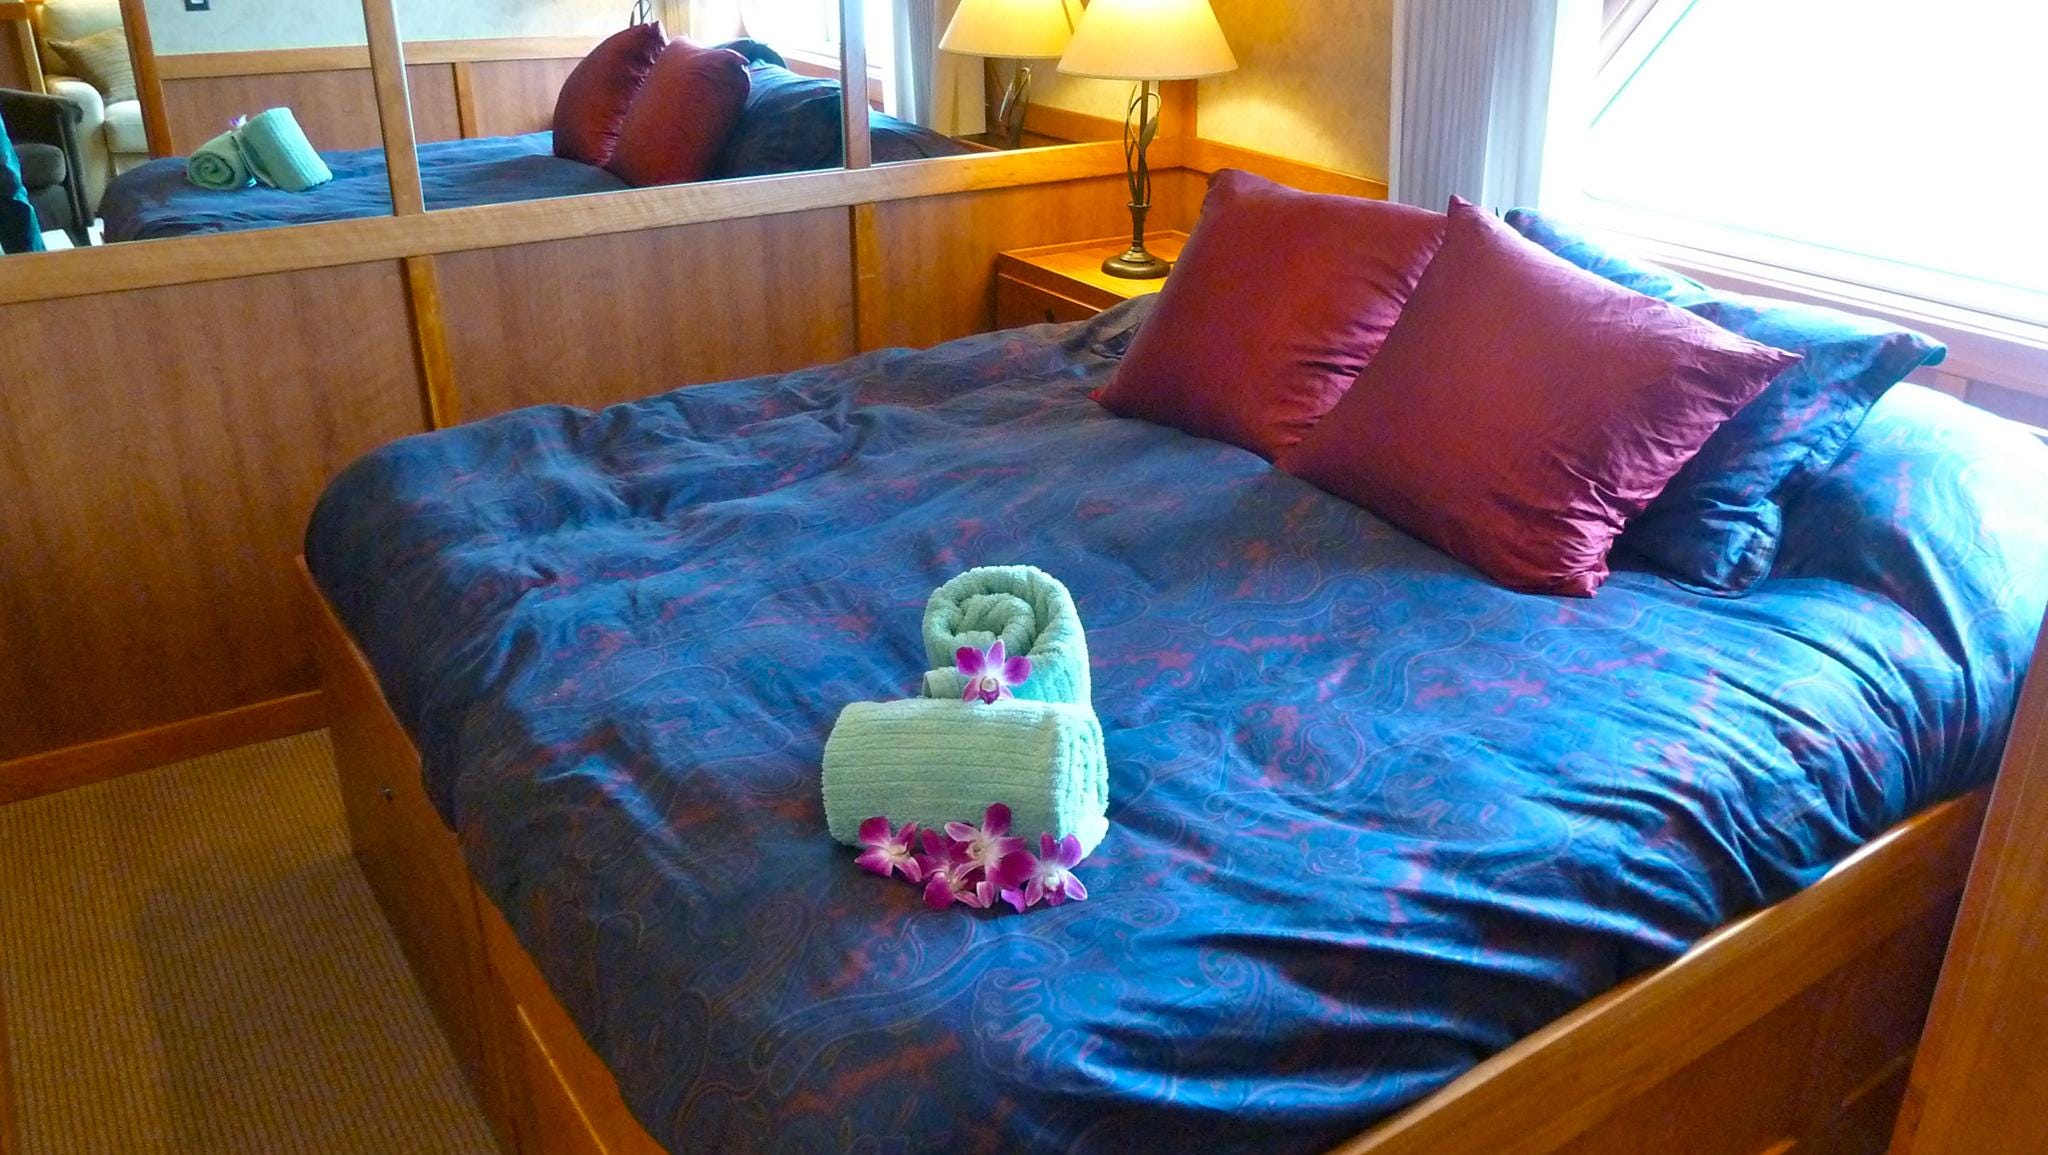 Commodore Suites have a bedroom with king-sized bed, a flat-screen television, extra storage and a picture window.